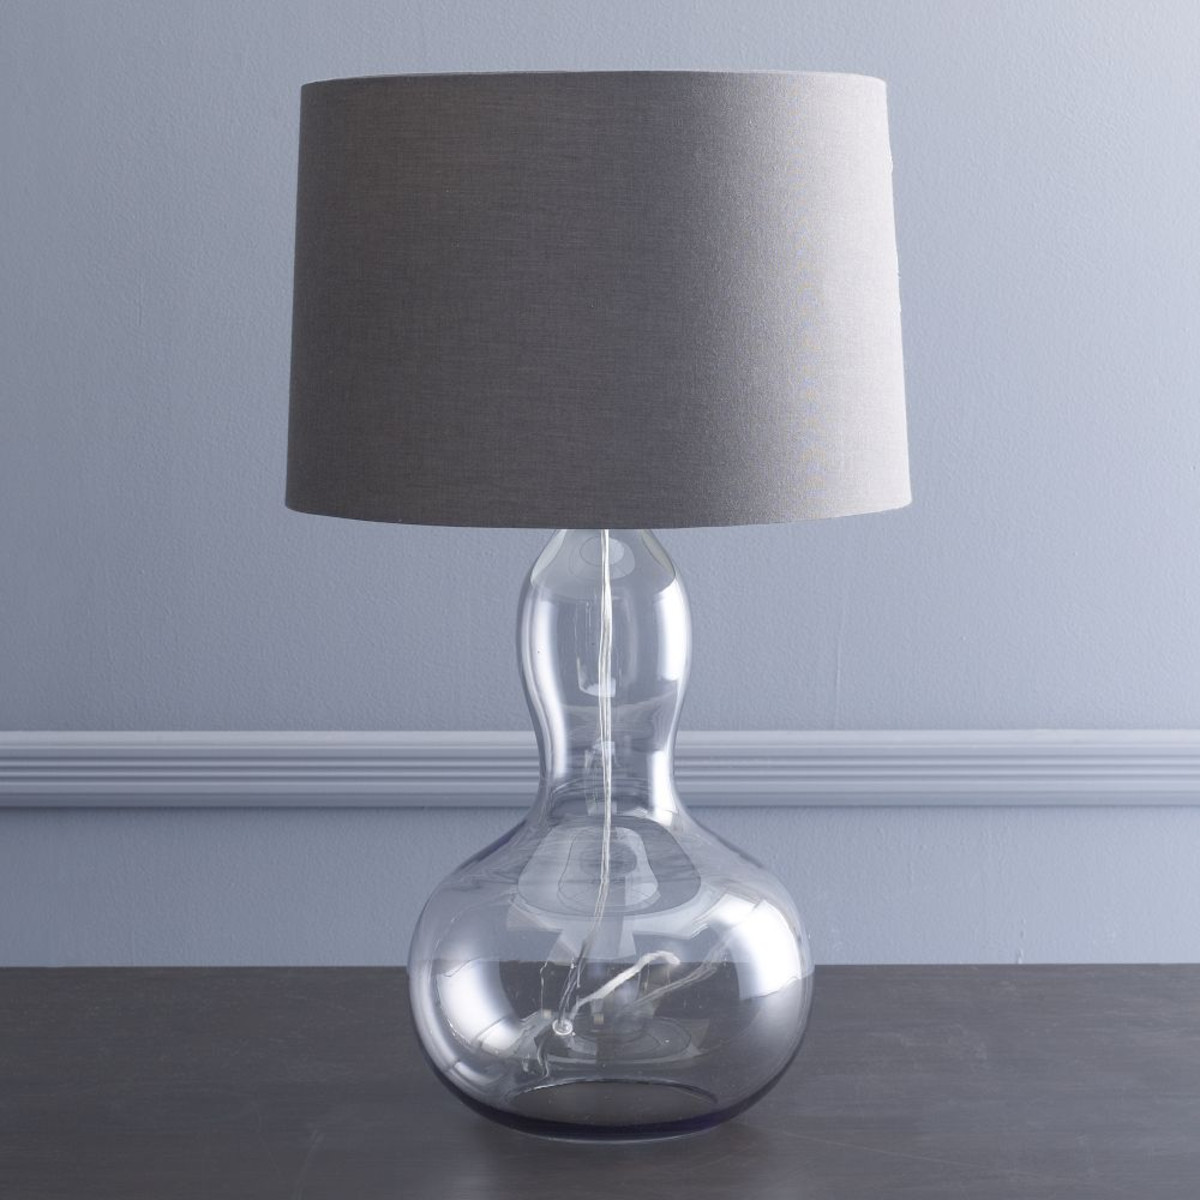 Luxury Table Lamps Top 50 Modern Table Lamps For Living Room Ideas Home